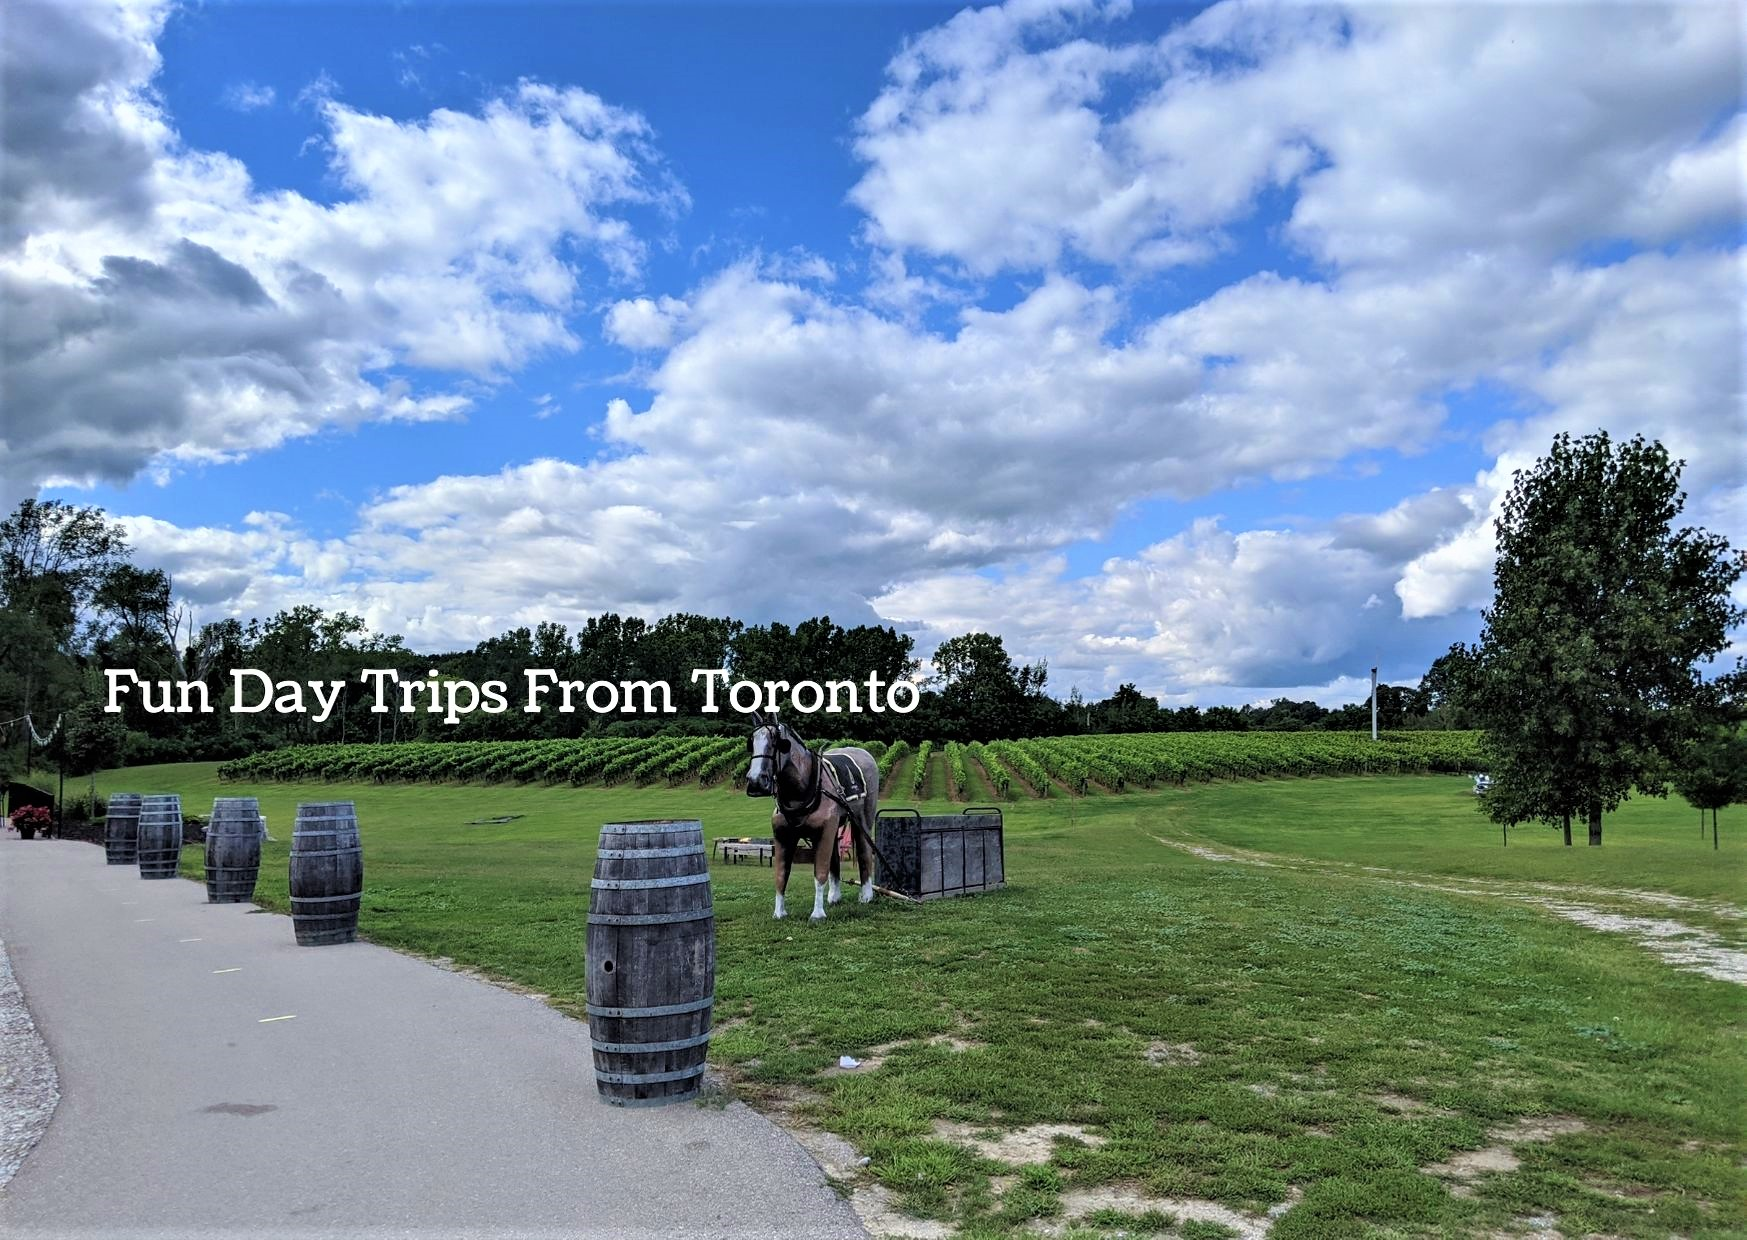 Horse and buggy on green grass in Ontario for day trip from Toronto